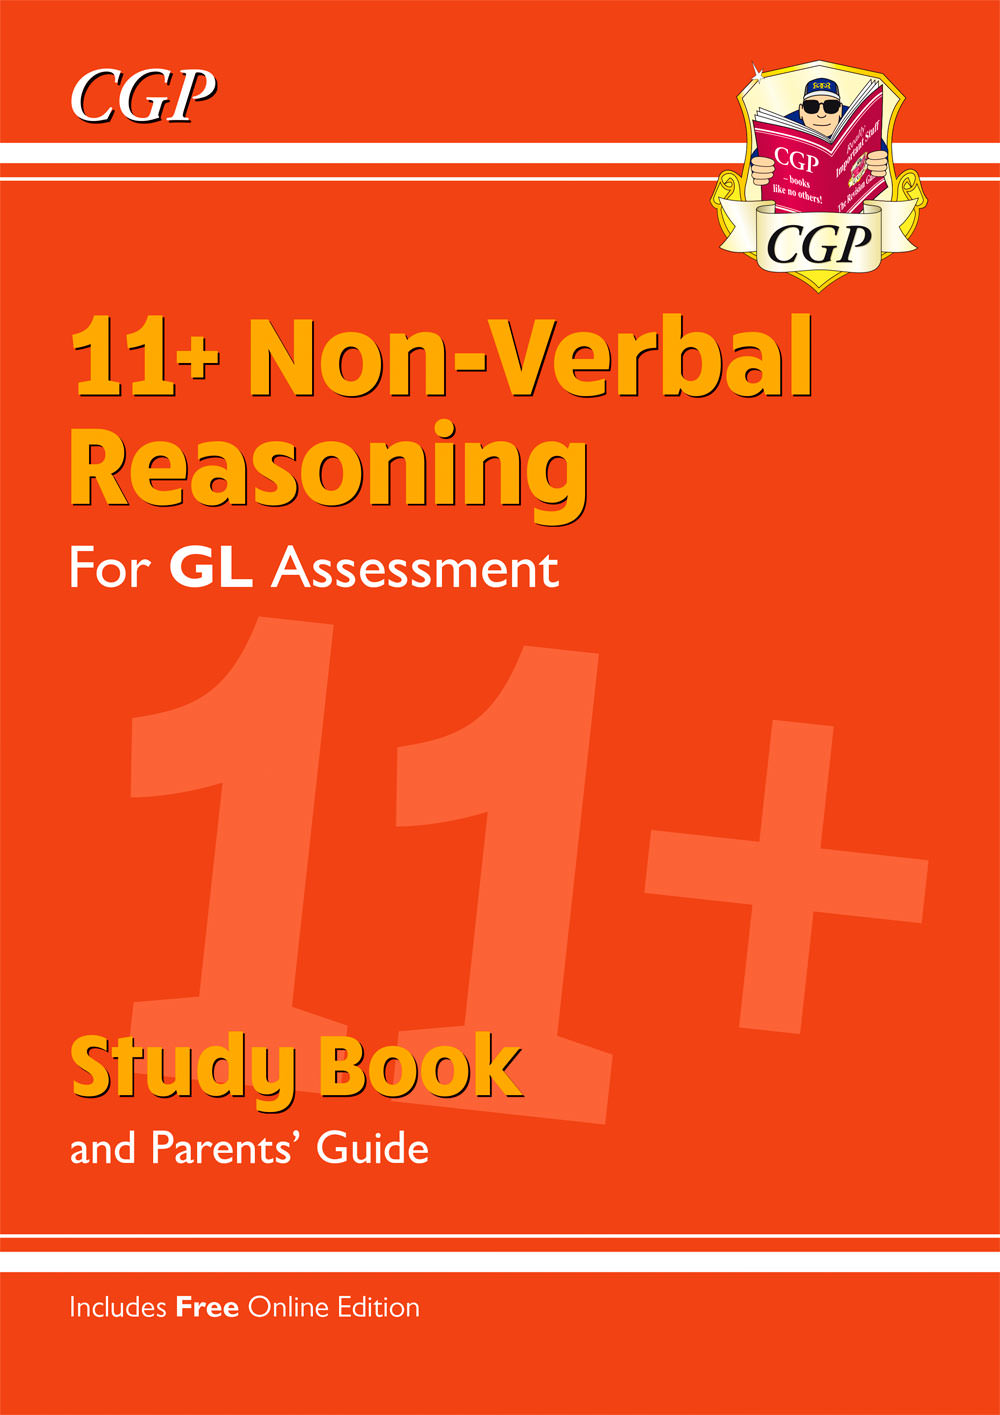 NHRE2 - New 11+ GL Non-Verbal Reasoning Study Book (with Parents' Guide & Online Edition)